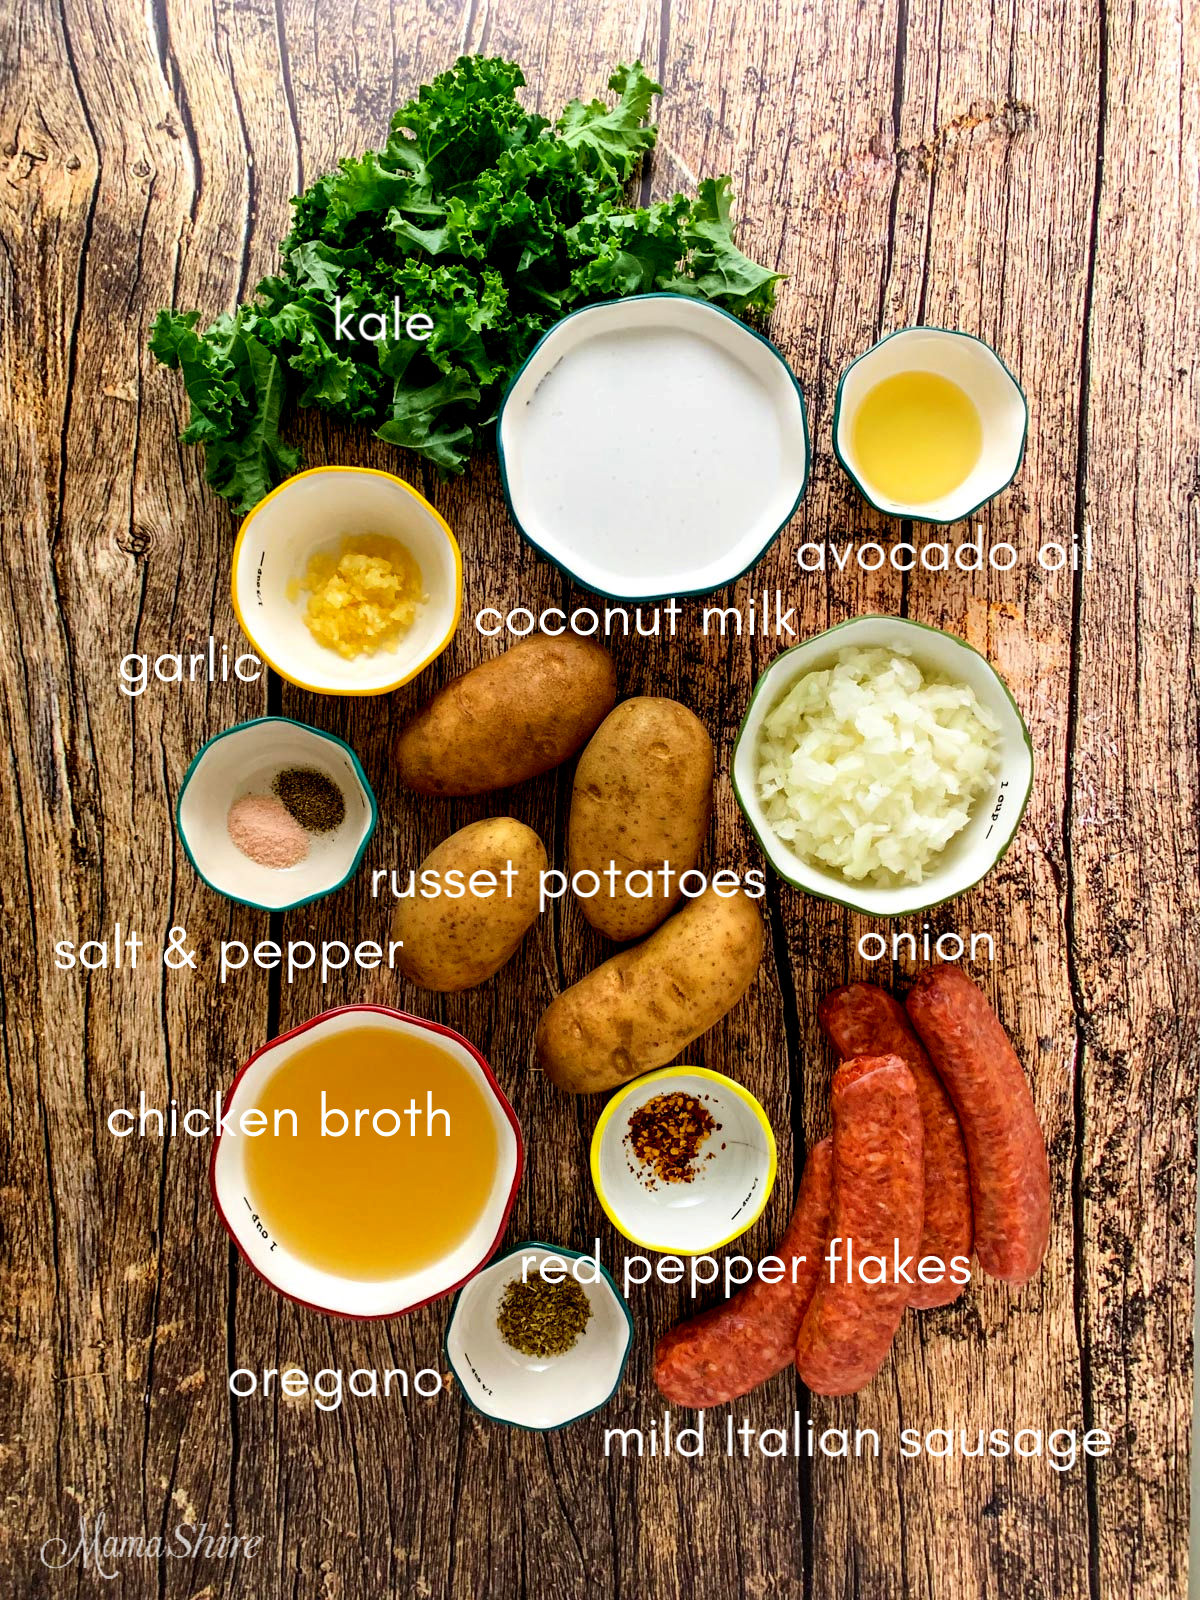 Ingredients for zuppa toscana.